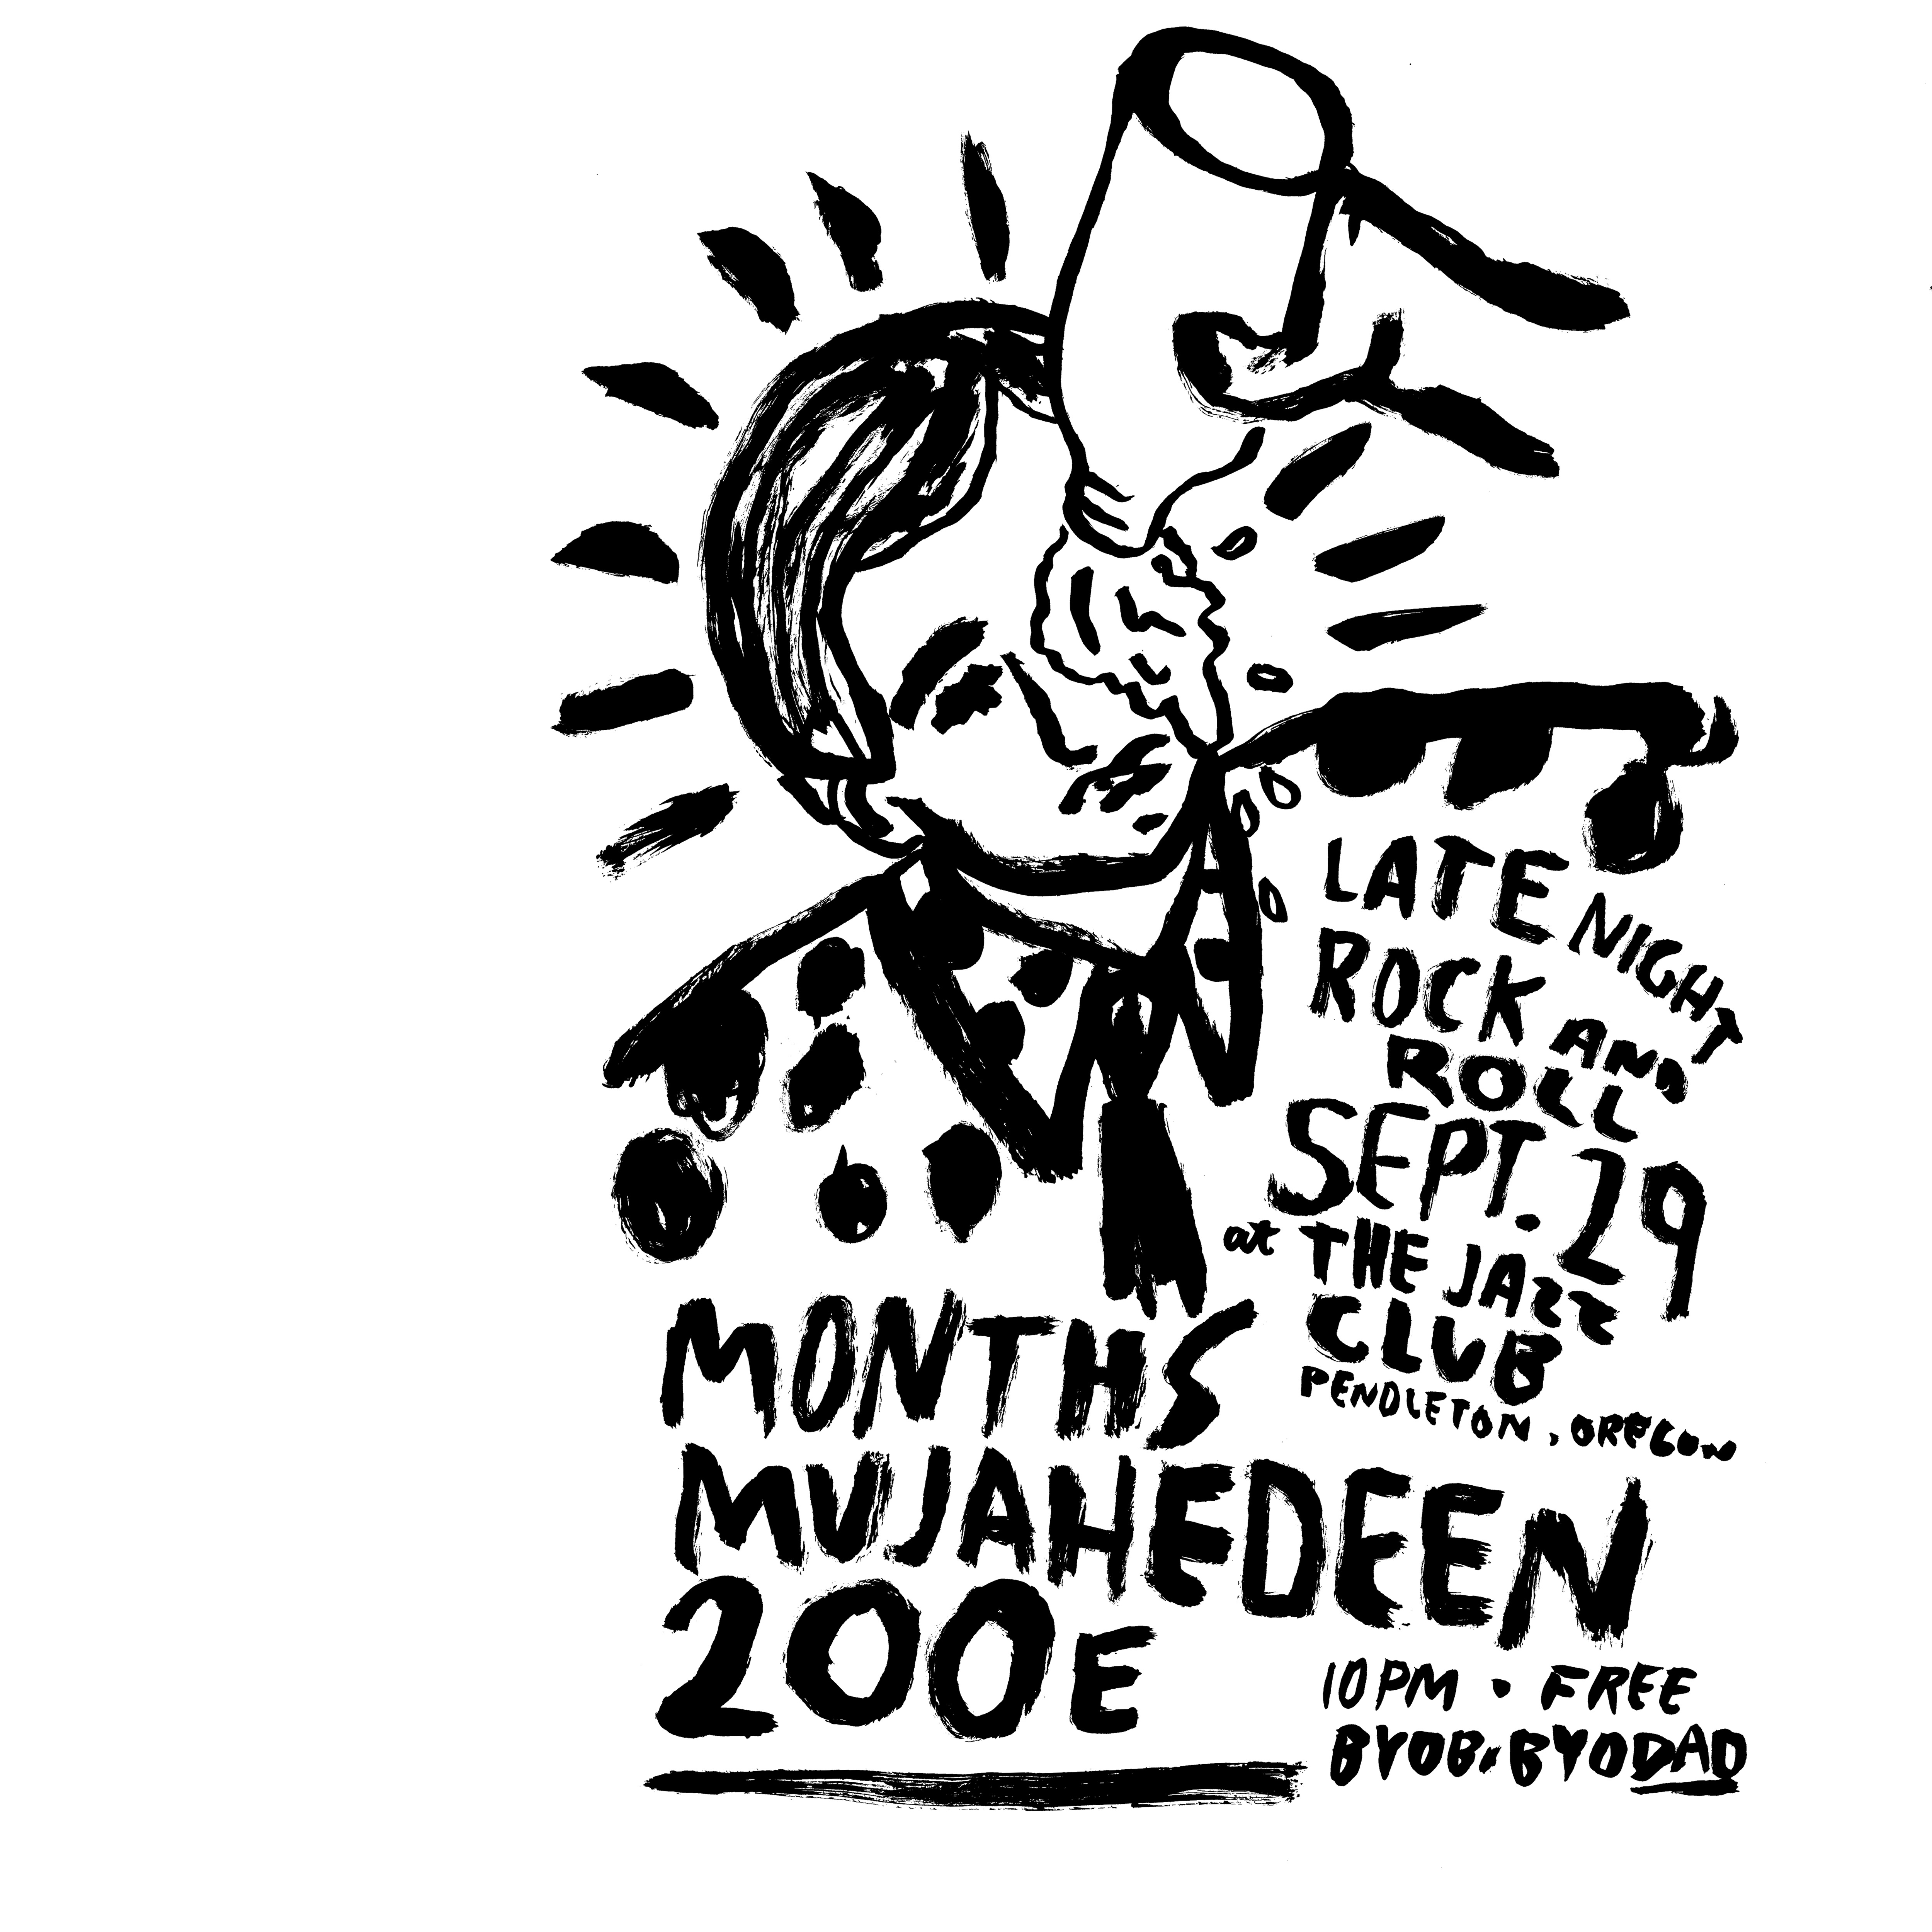 months plays the jazz club in pendleton on friday september 29 with mujahedeen and 200e